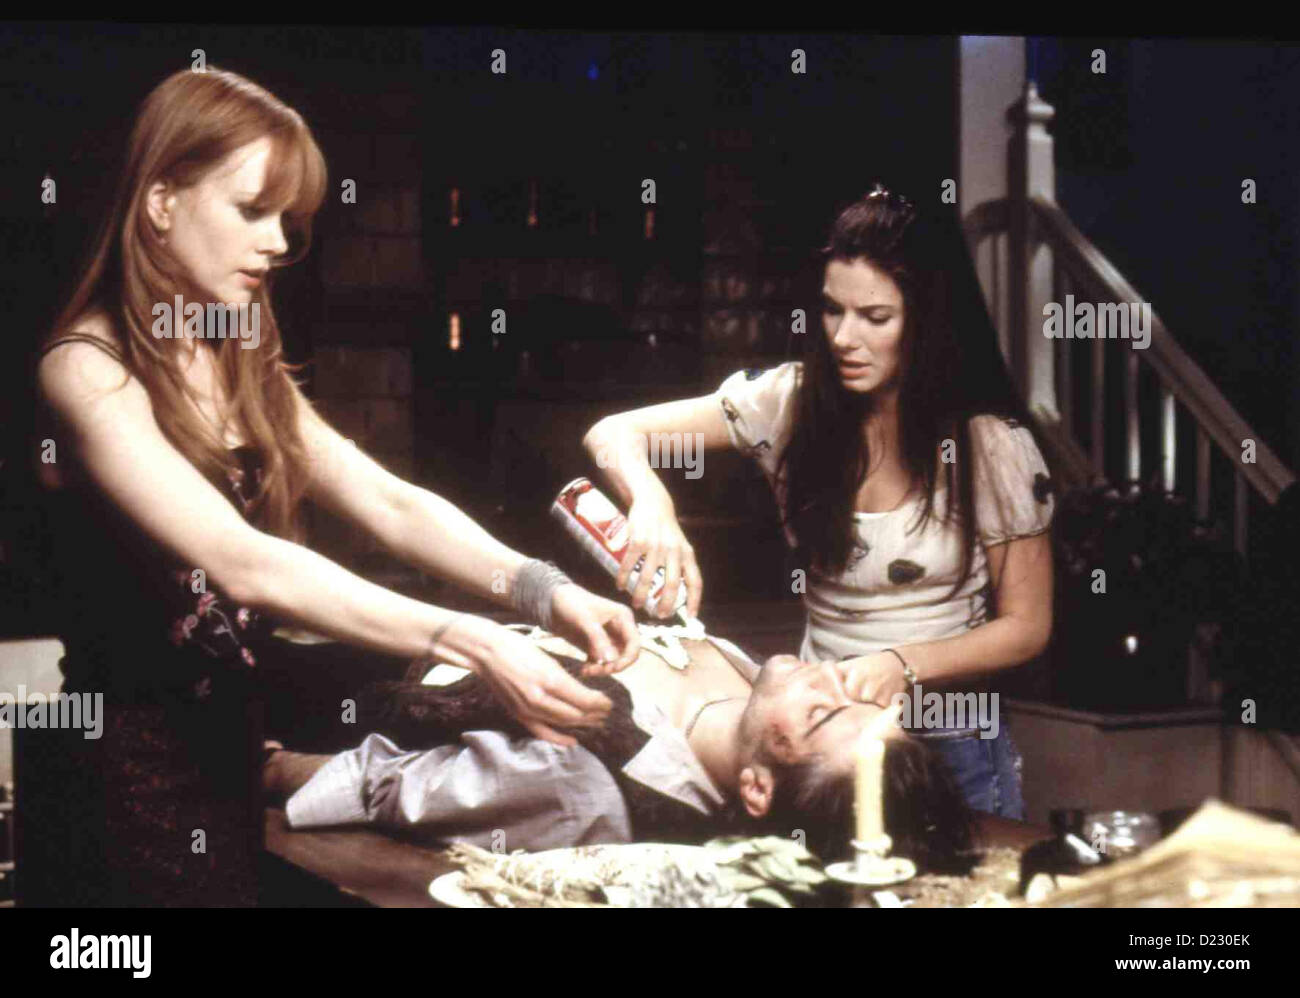 Zauberhafte Schwestern  Practical Magic  Gillian Owens (Nicole Kidman), Jimmy (Goran Visnjic), Sally Owens (Sandra - Stock Image